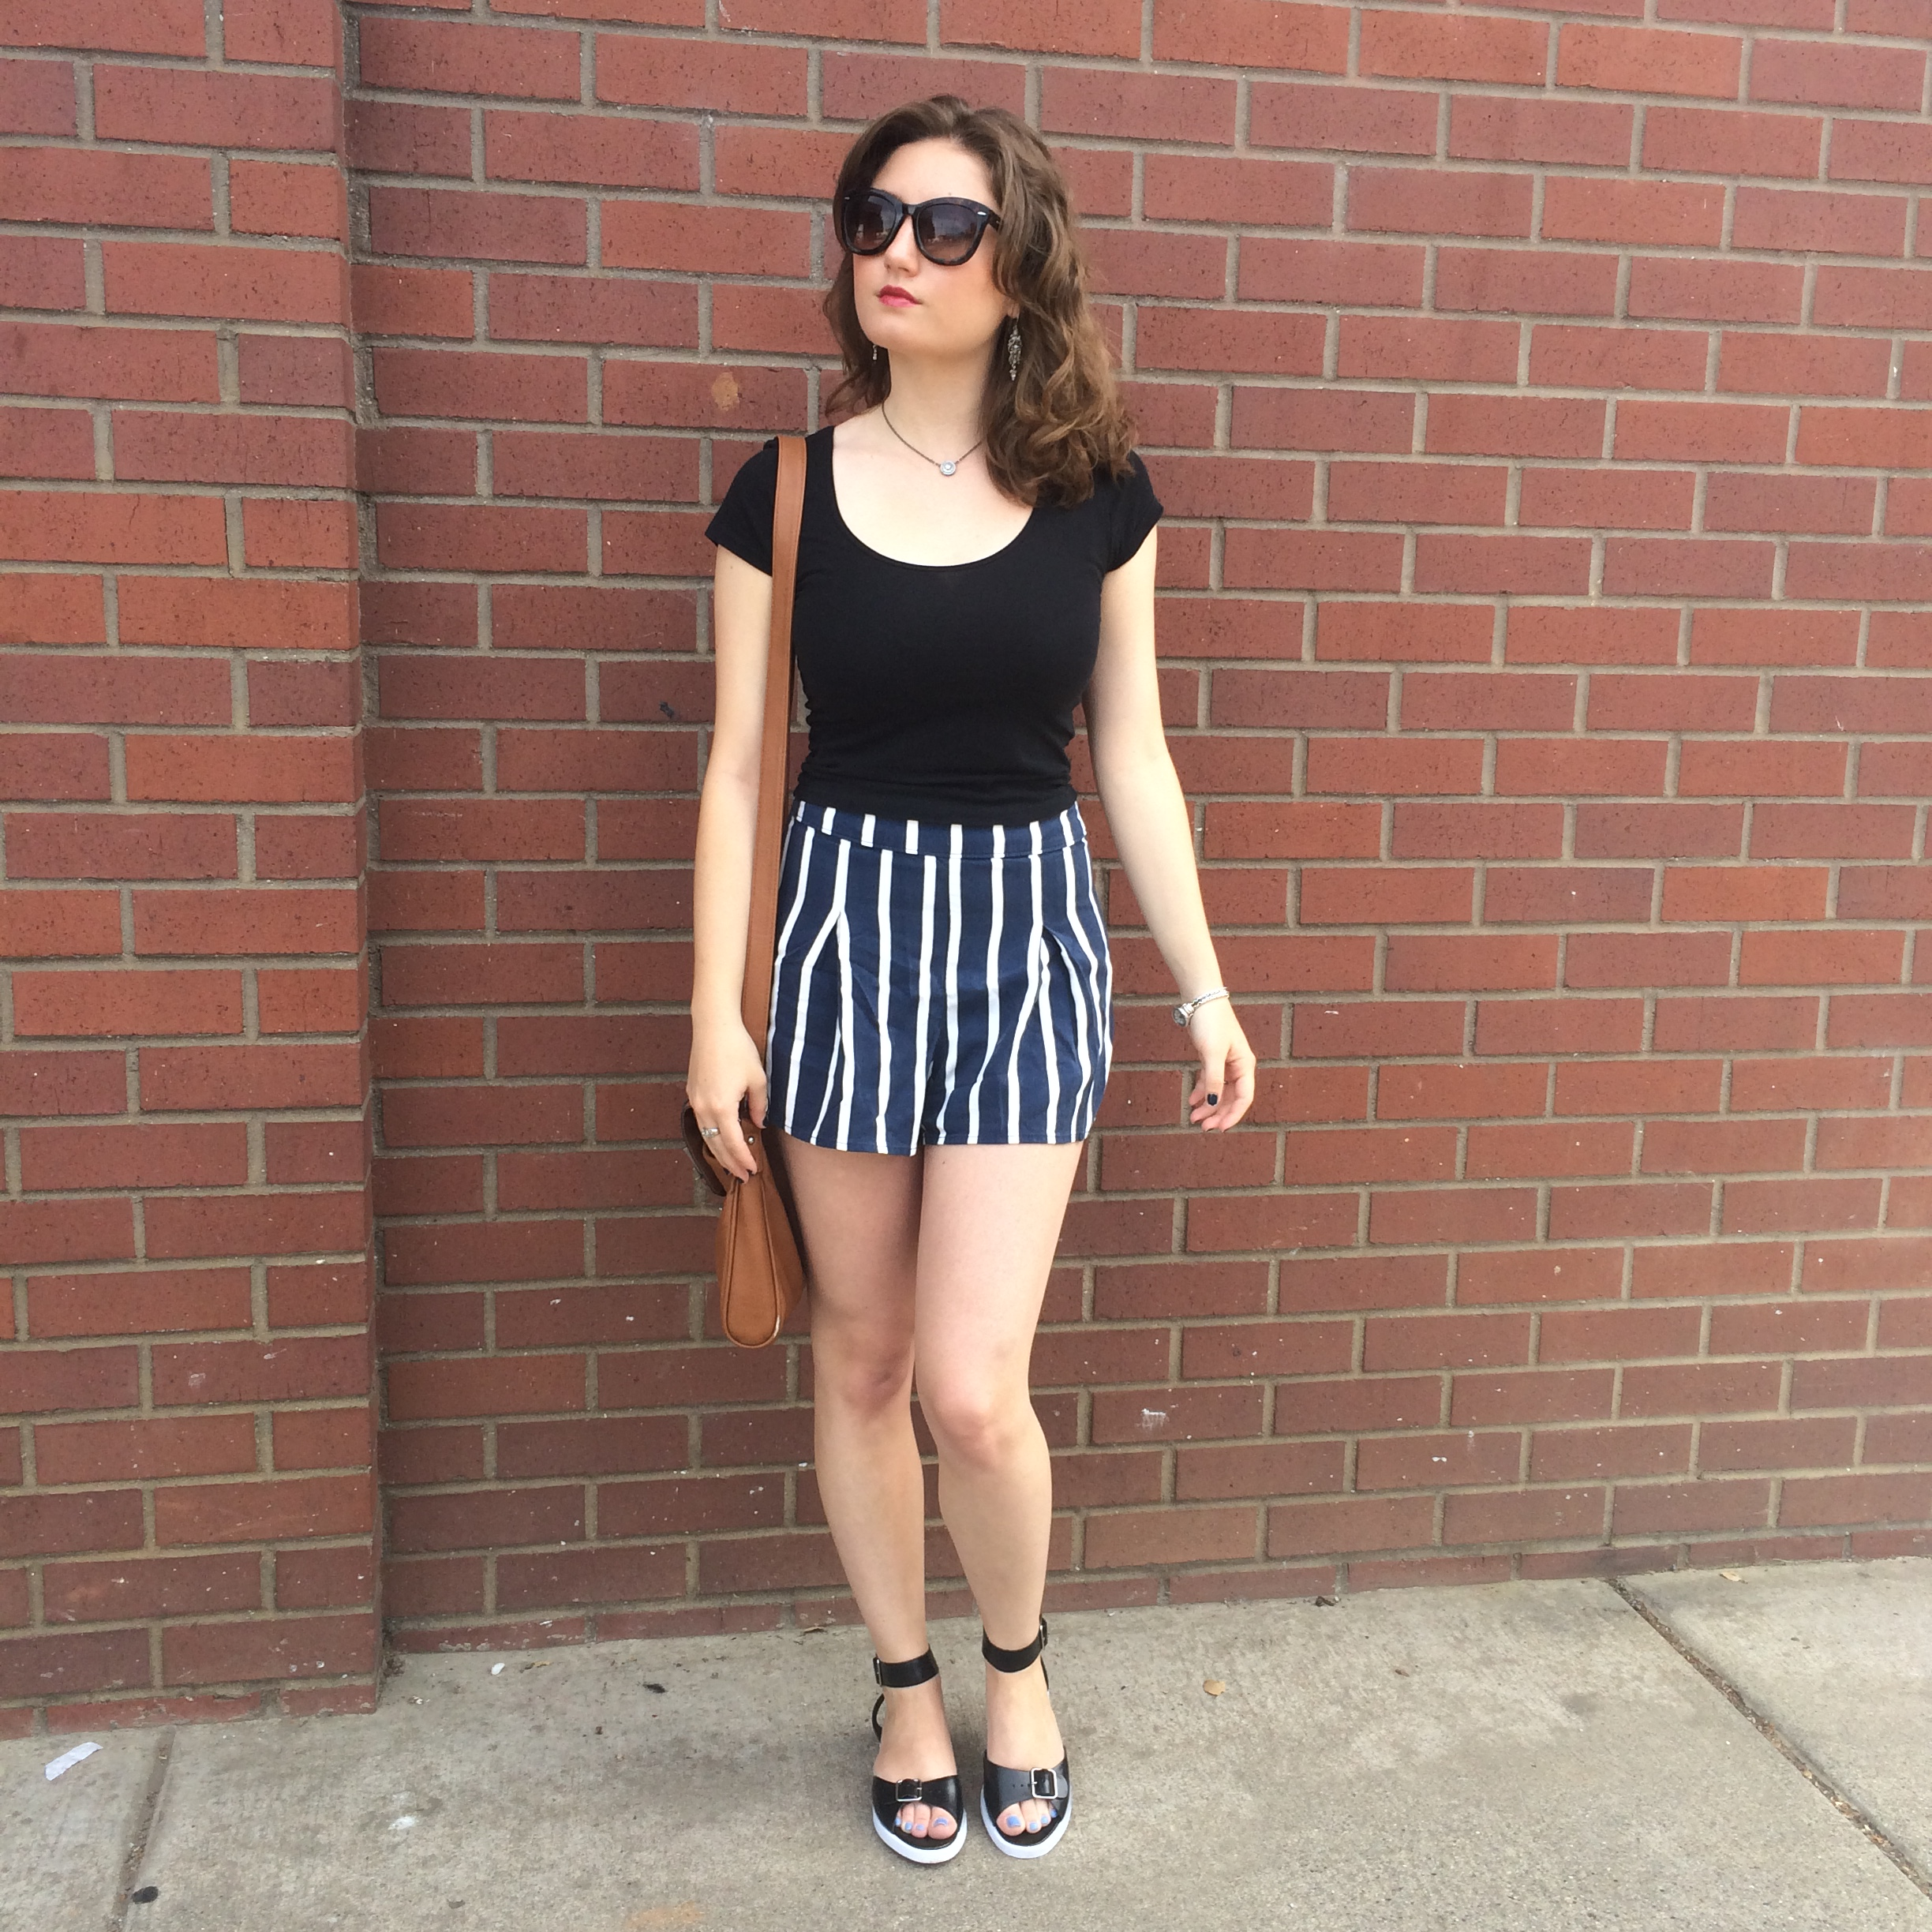 Black sandals gap - Abercrombie Crop Top Abercrombie High Waisted Striped Shorts Gap Strappy Sandals